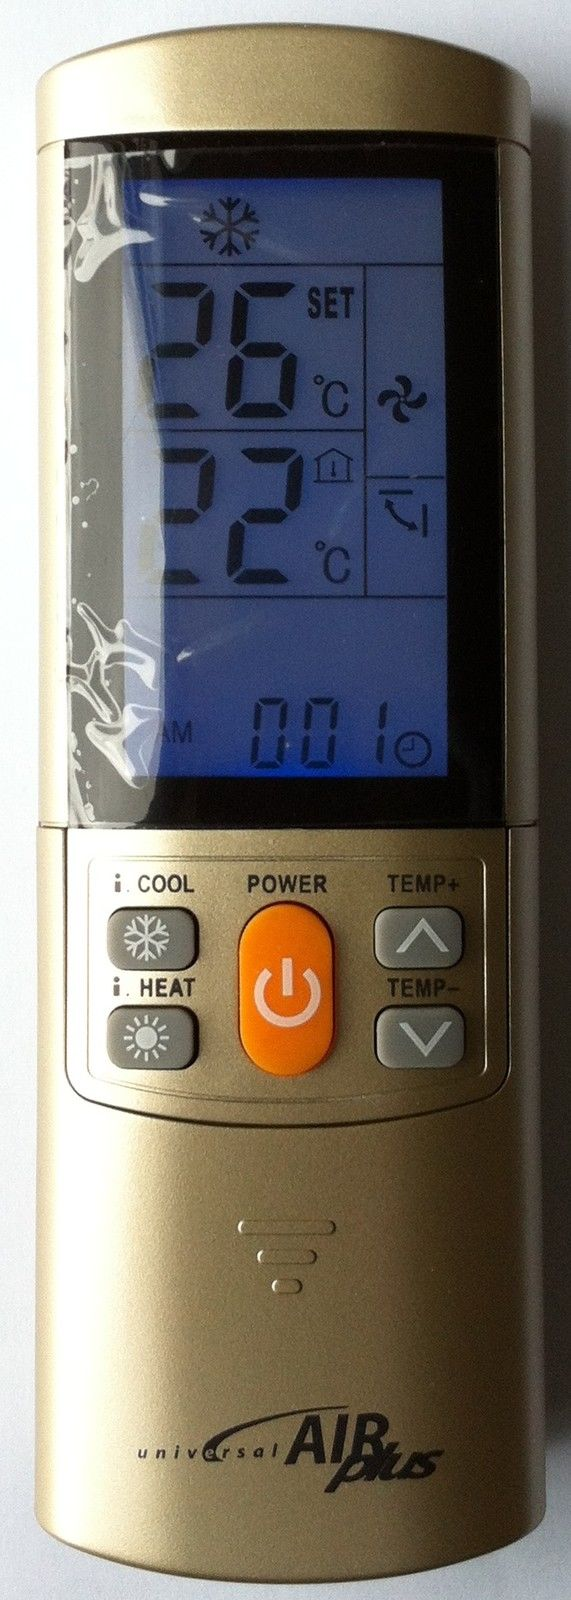 REPLACEMENT UNIVERSAL MITSUBISHI AIR CON REMOTE CONTROL FOR MITSUBISHI AIR CONDITIONER